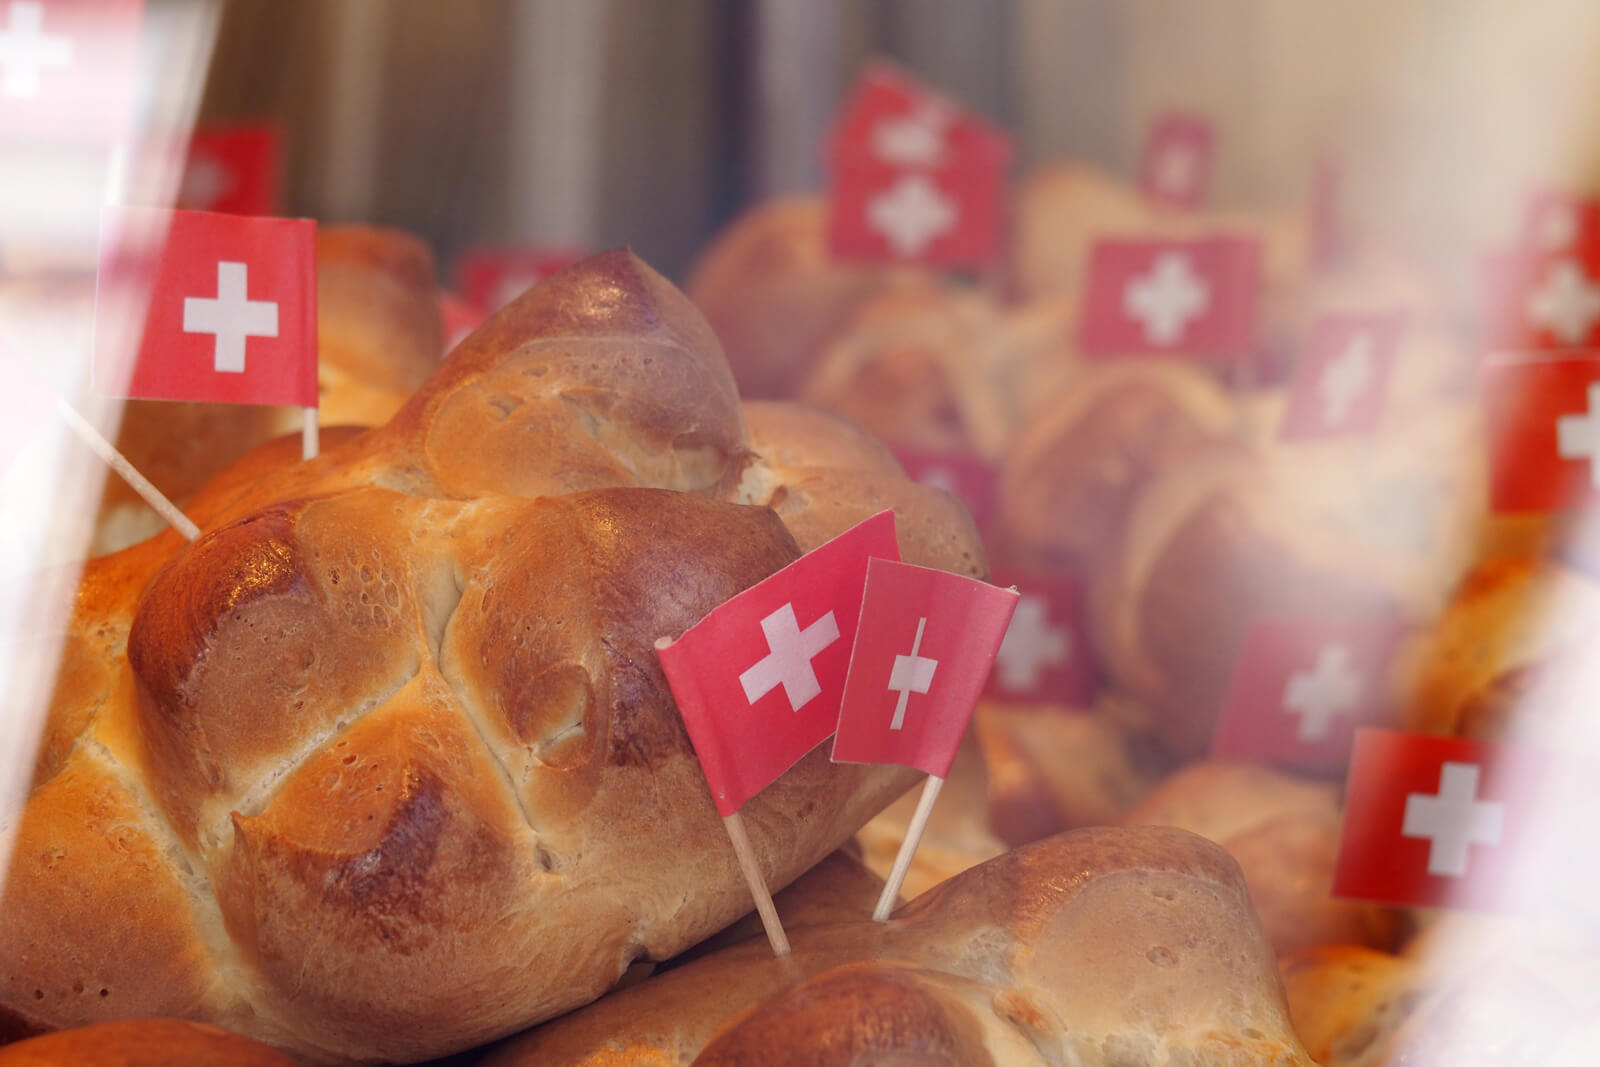 Zopf Buns for Swiss National Day